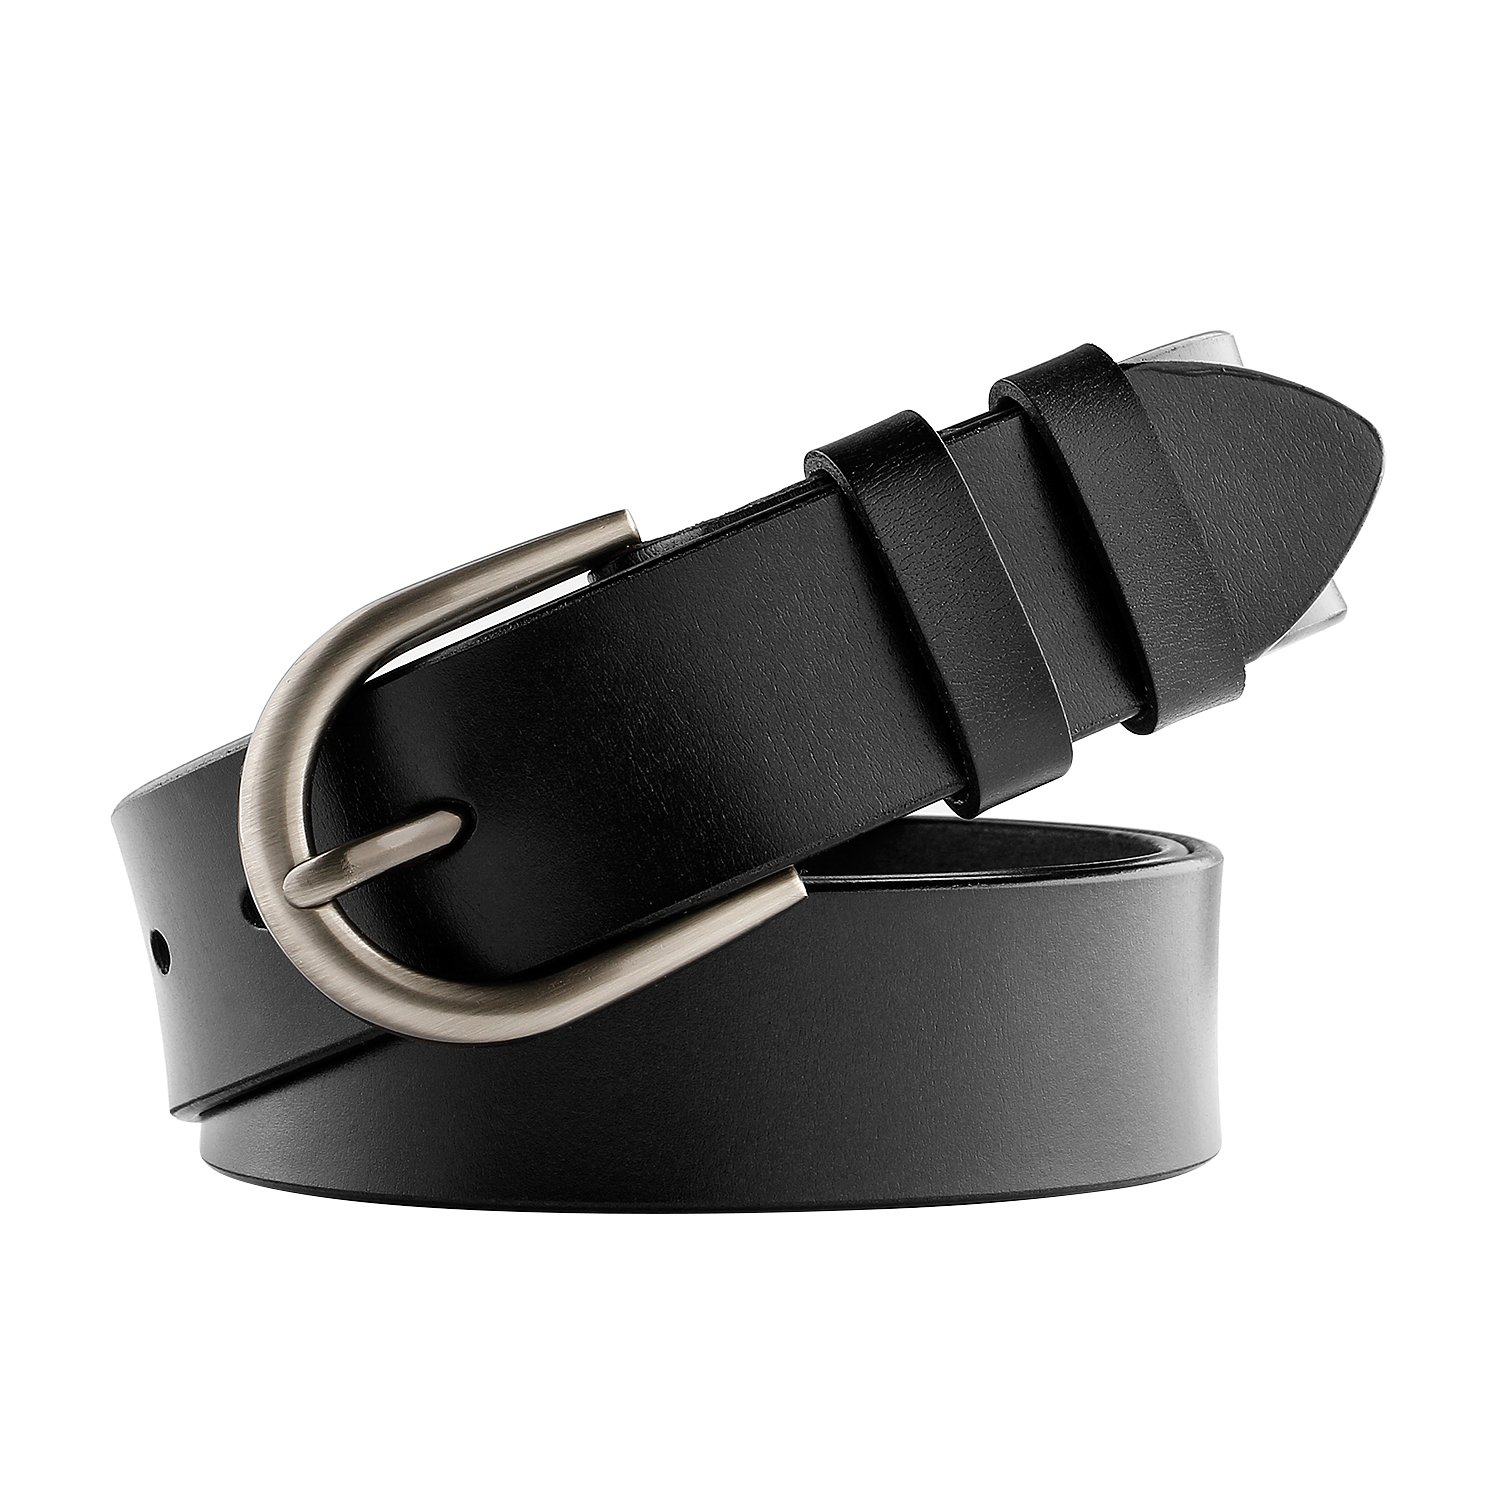 WHIPPY Genuine Leather Belt for Women Waist Belt with Brushed Alloy Buckle 1-black/Silver Buckle Medium